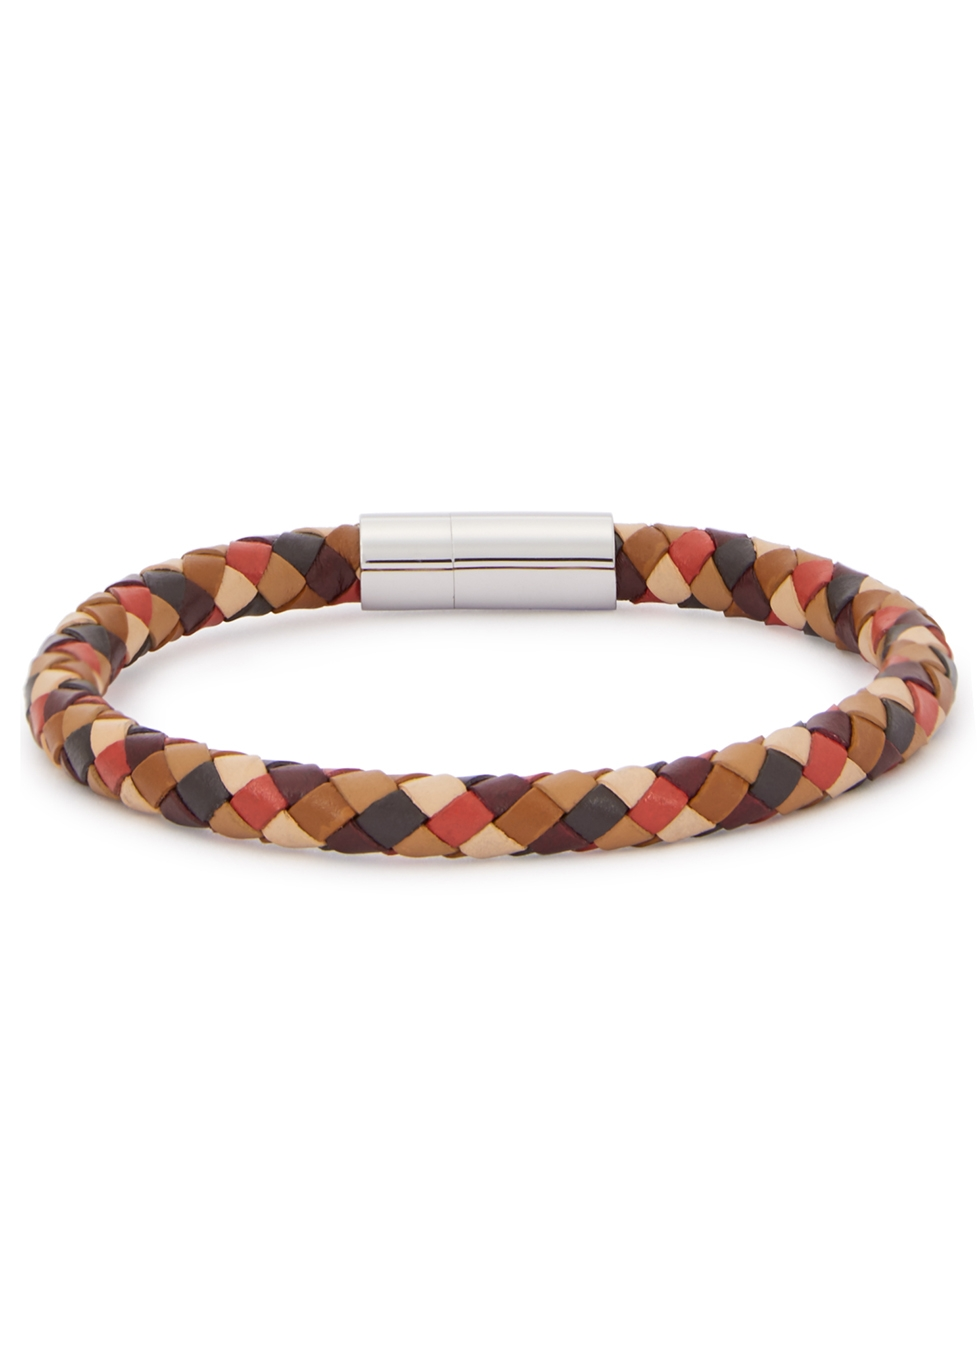 Brown woven leather bracelet - Paul Smith